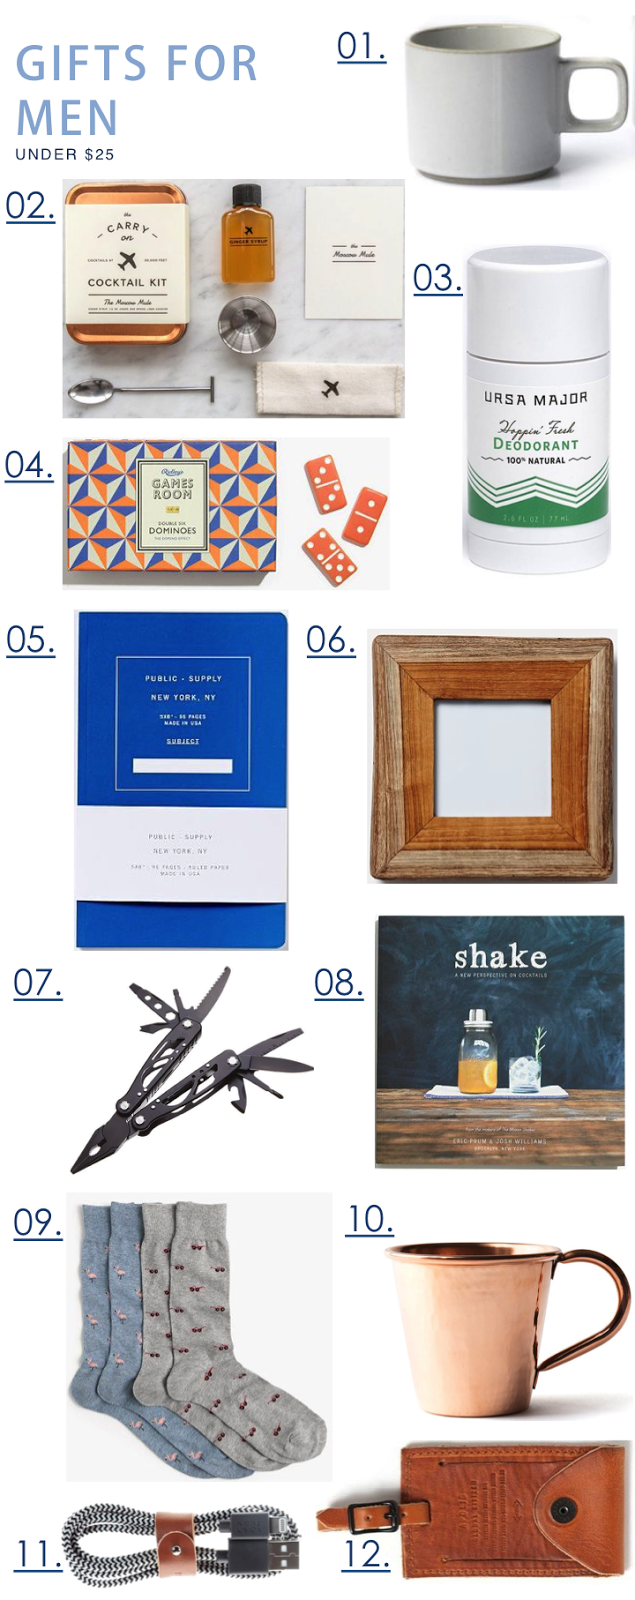 Boho Beach Bungalow Holiday Gift Guide For Men 2015